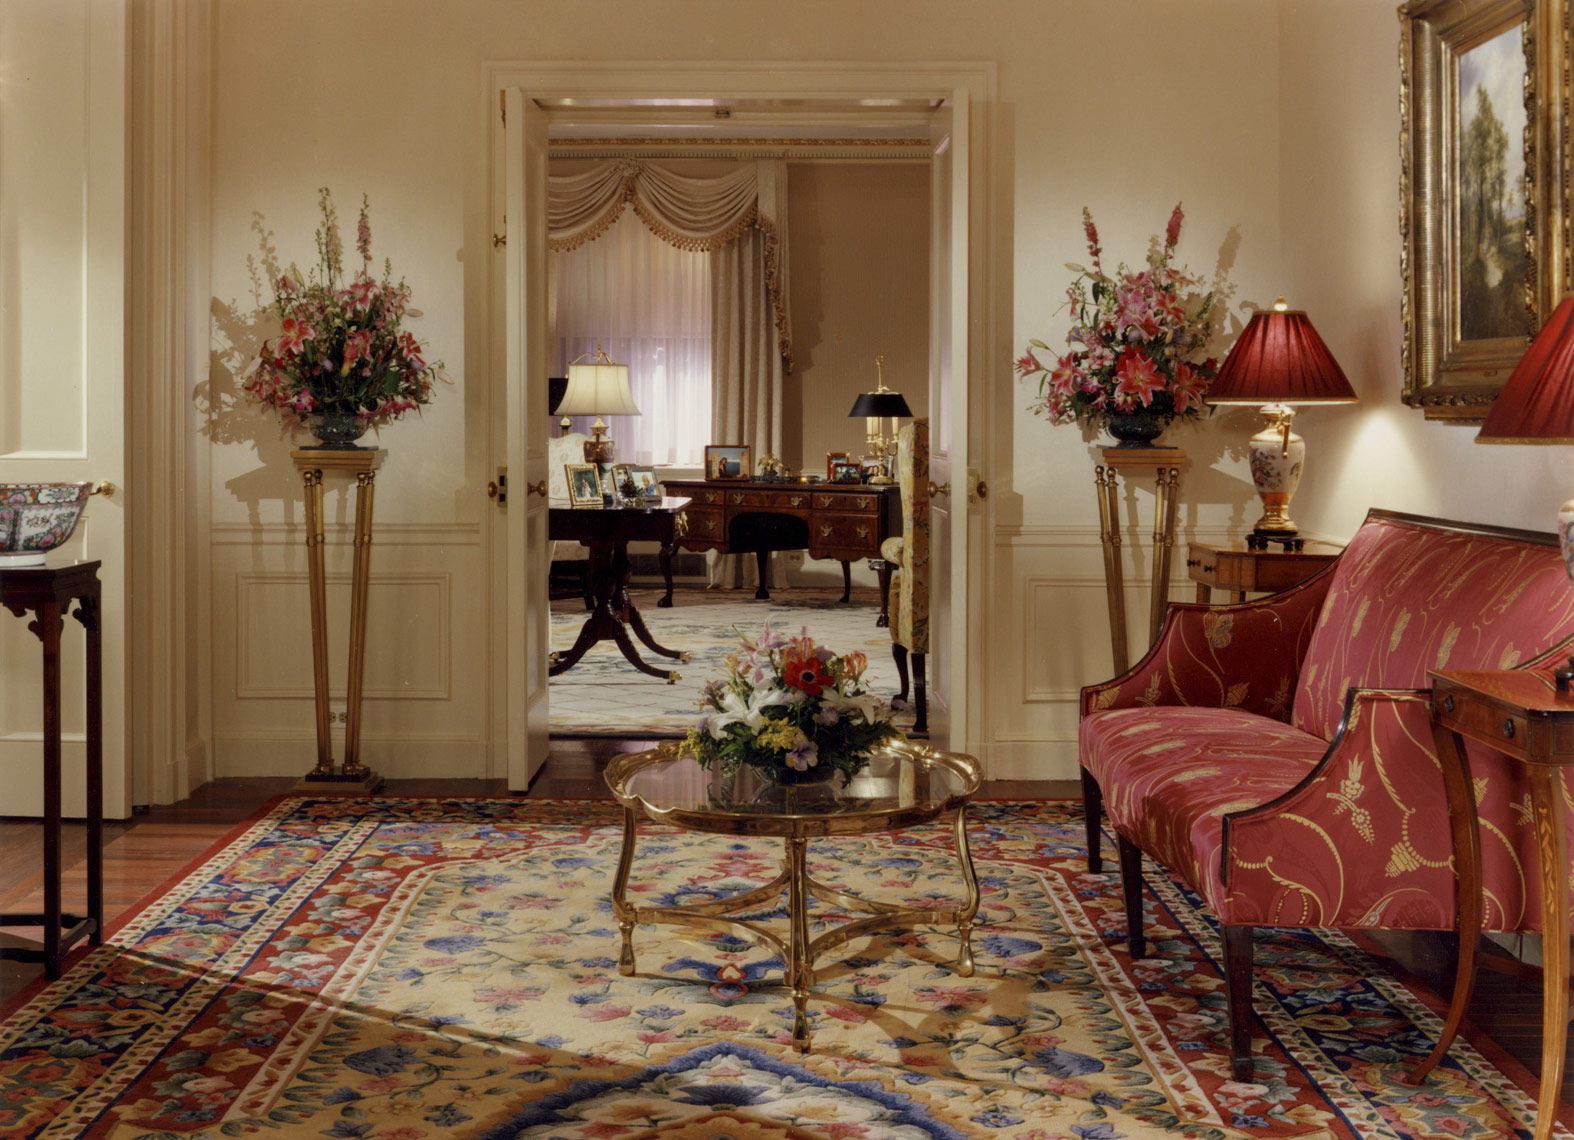 Waldorf Towers Presidential Suite, Interior Design by Kenneth E. Hurd & Associates